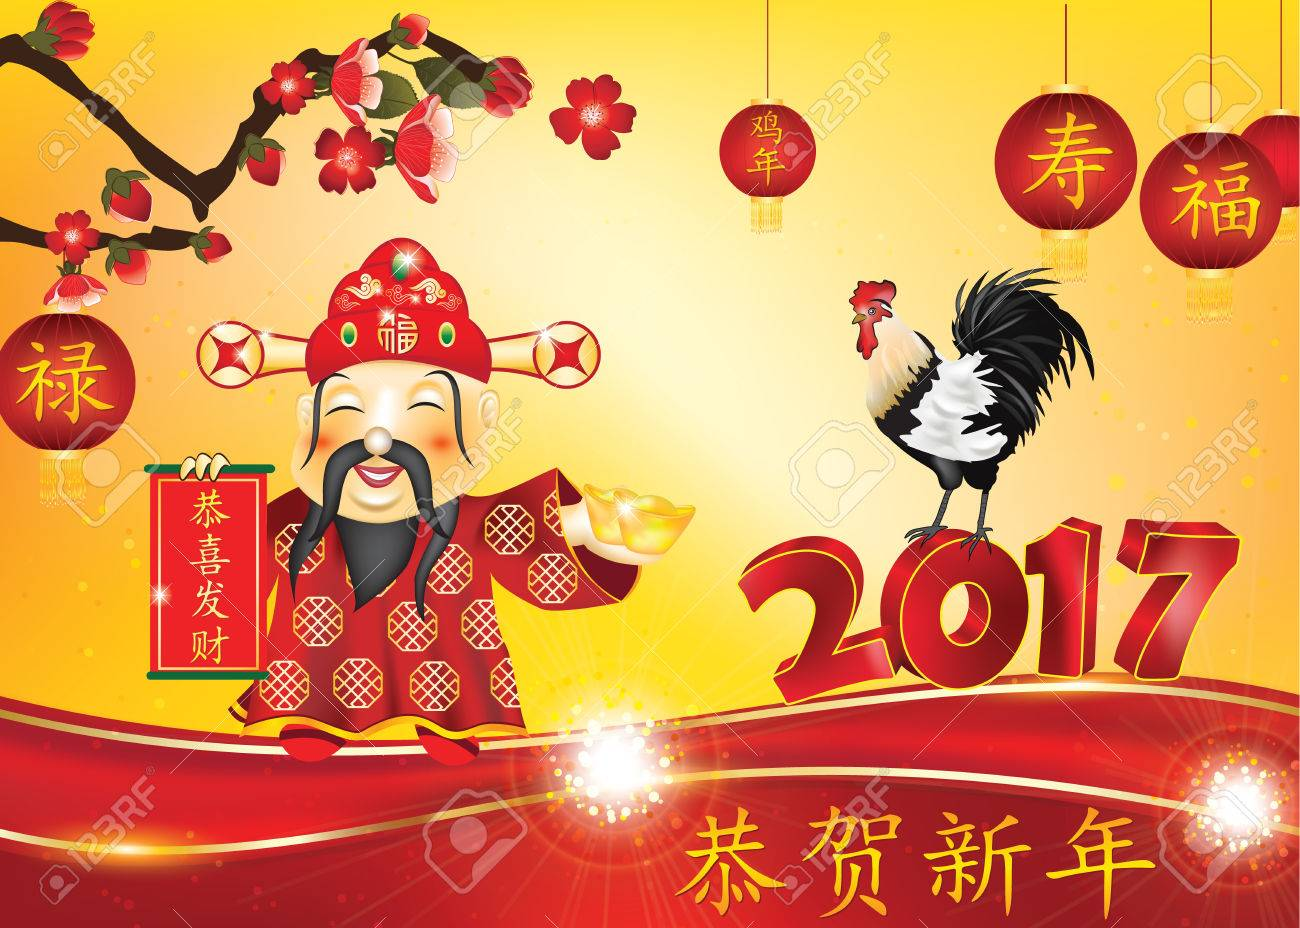 Chinese Greeting Card 2017 Text Translation Respectful